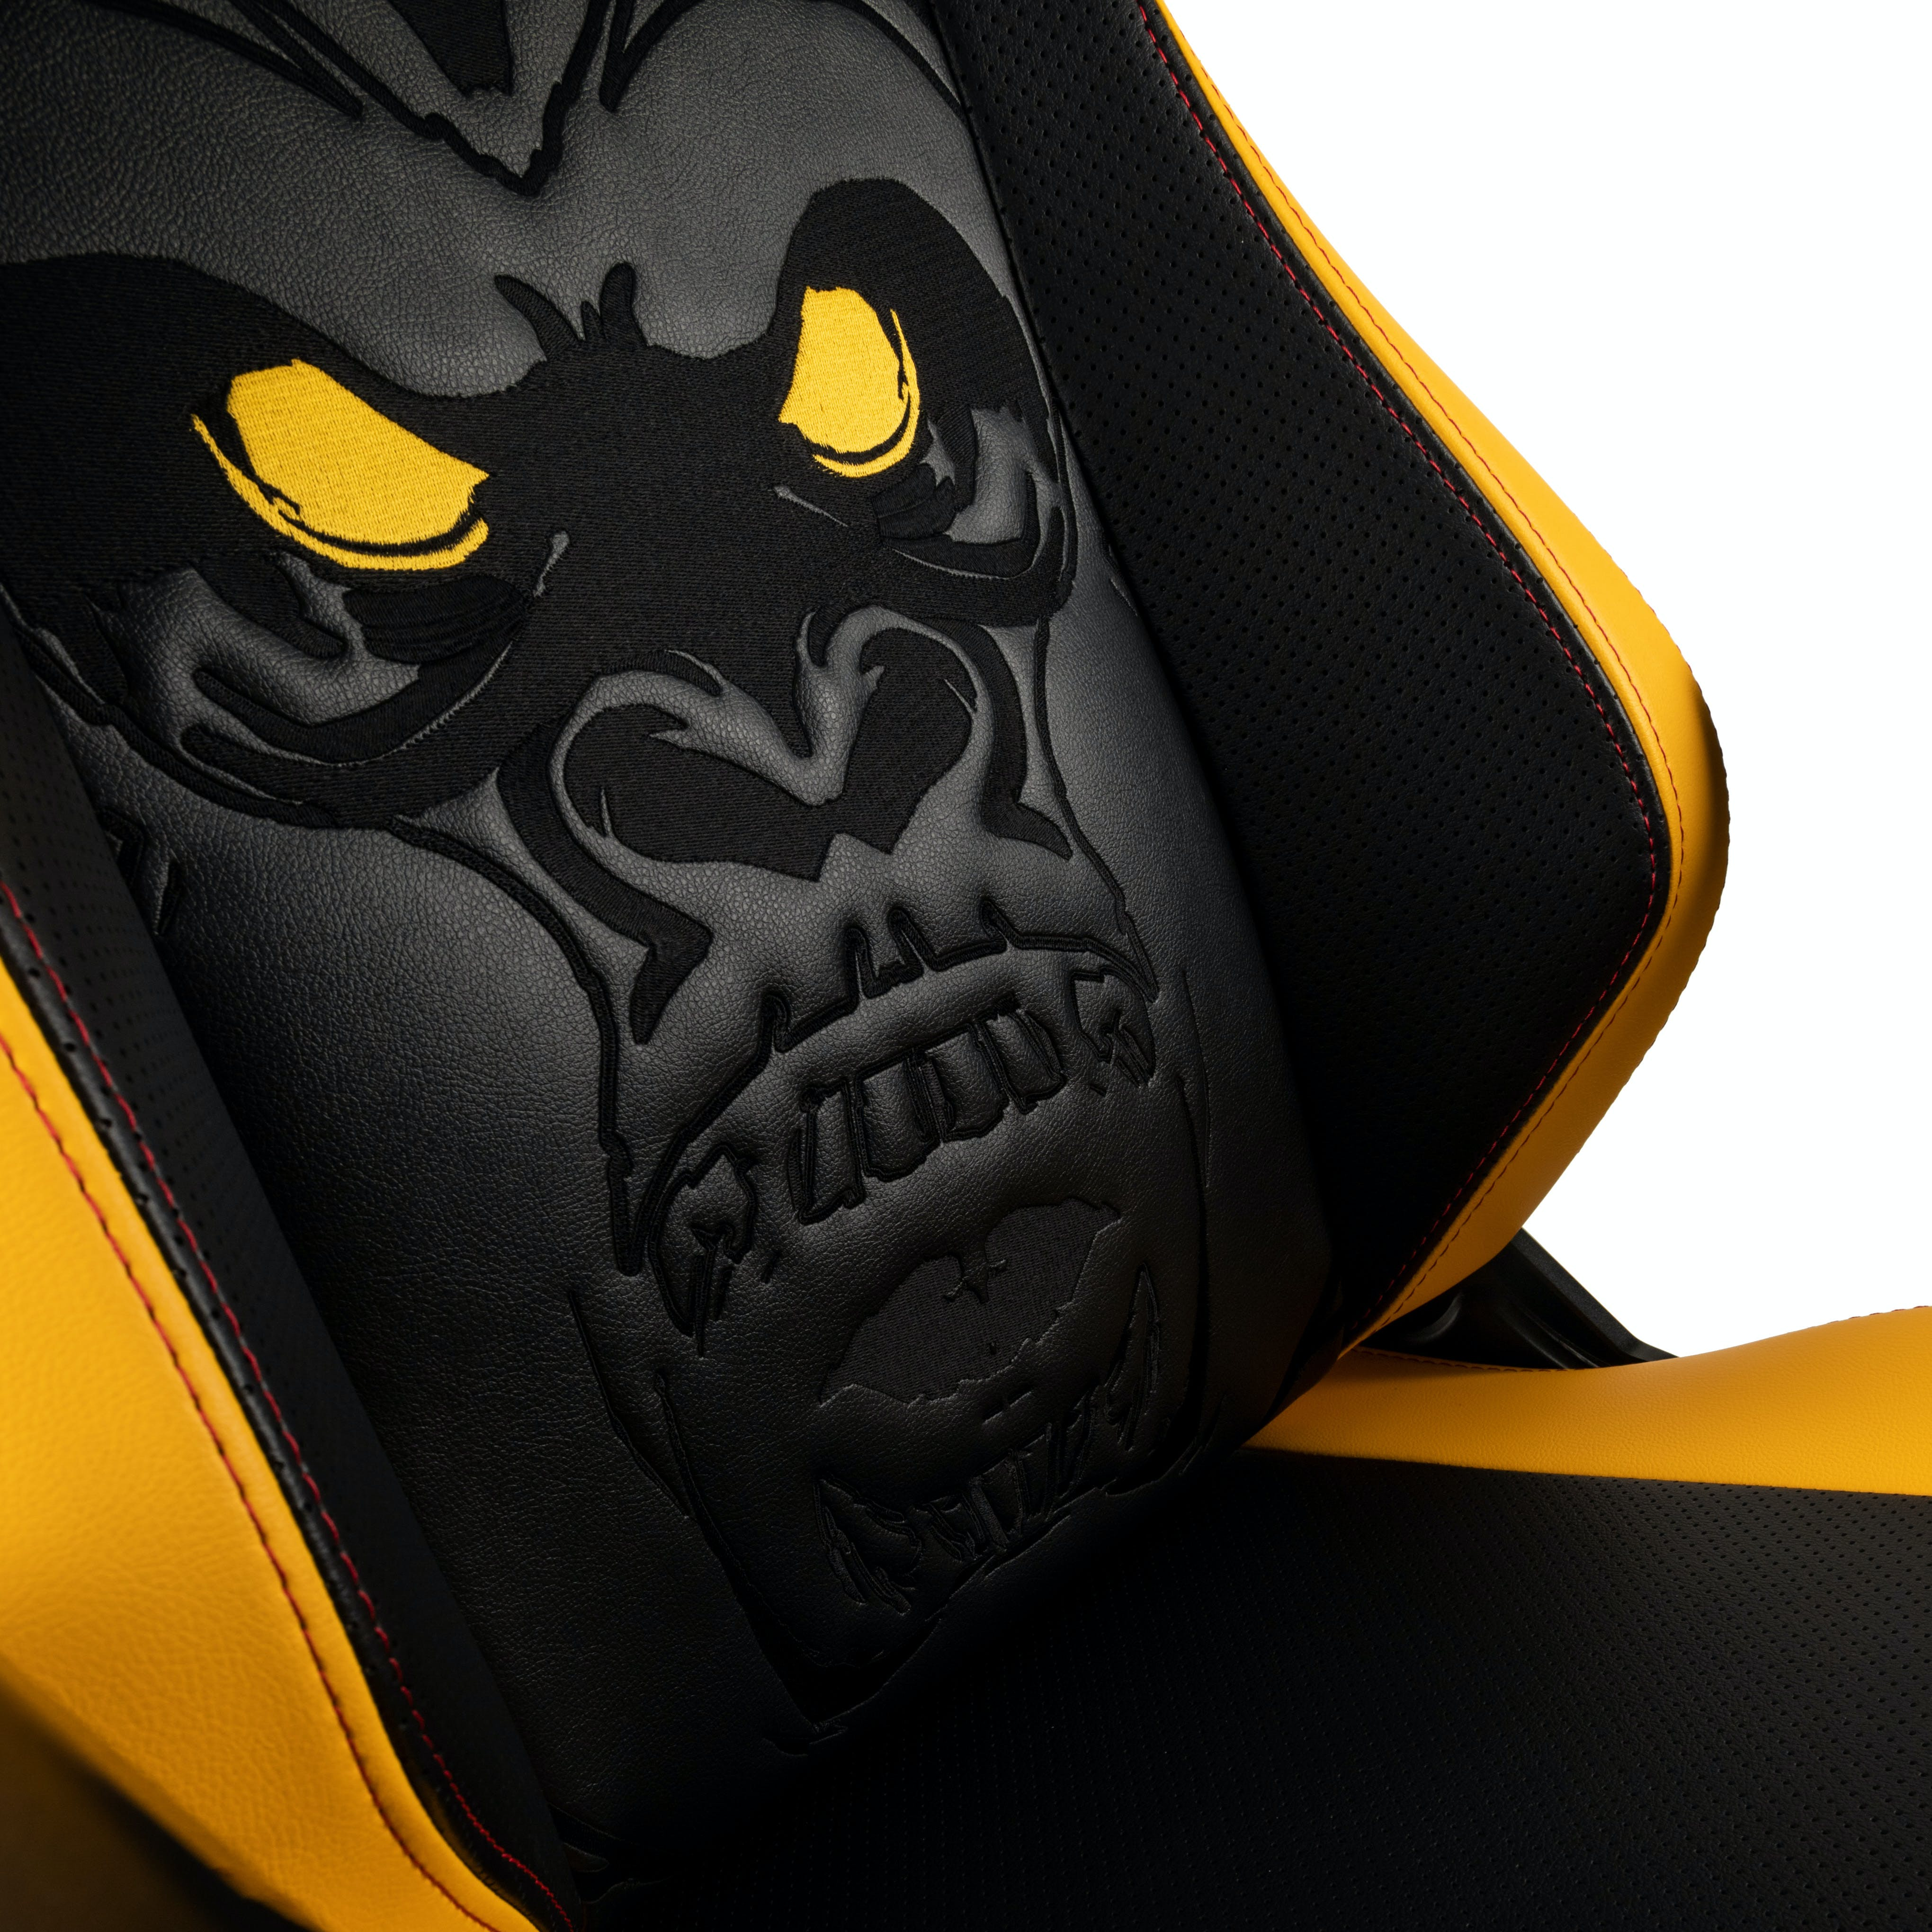 Noblechairs - HERO Far Cry 6 Edition